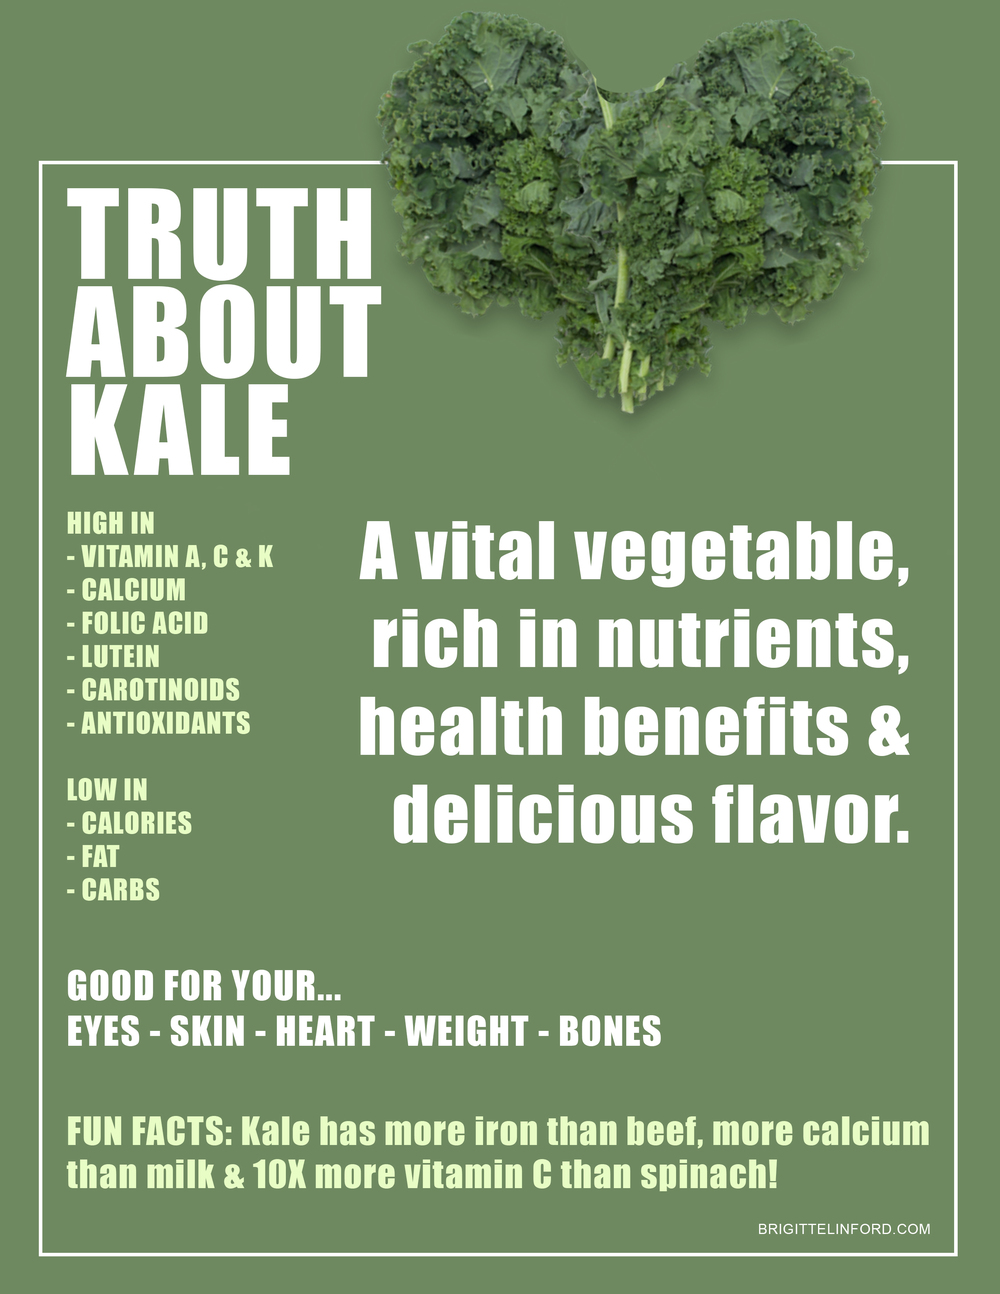 TRUTH ABOUT KALE, WHY IS IT HEALTHY FOR YOU